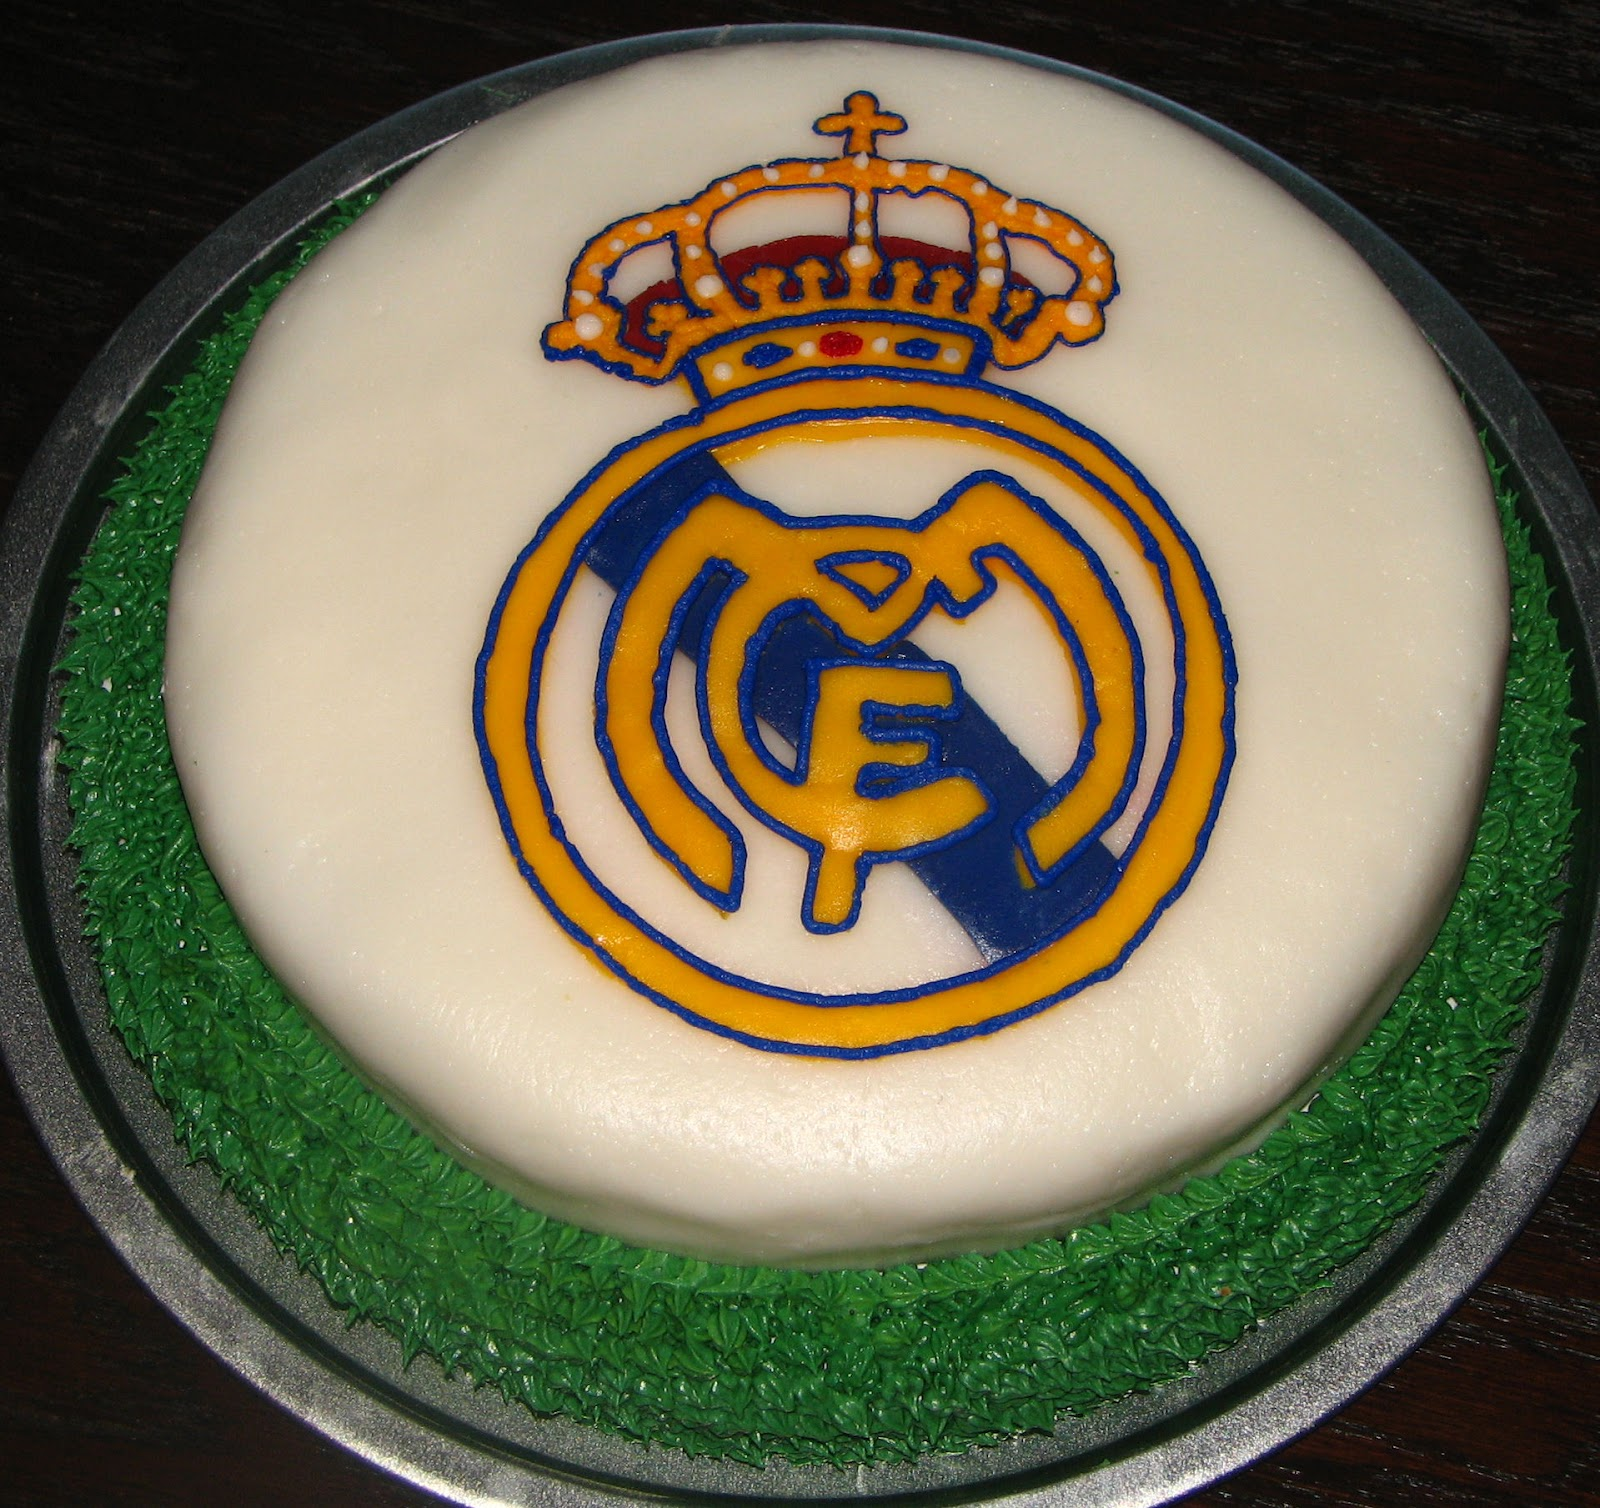 Utopia party decor soccer party decor - Real madrid decorations ...